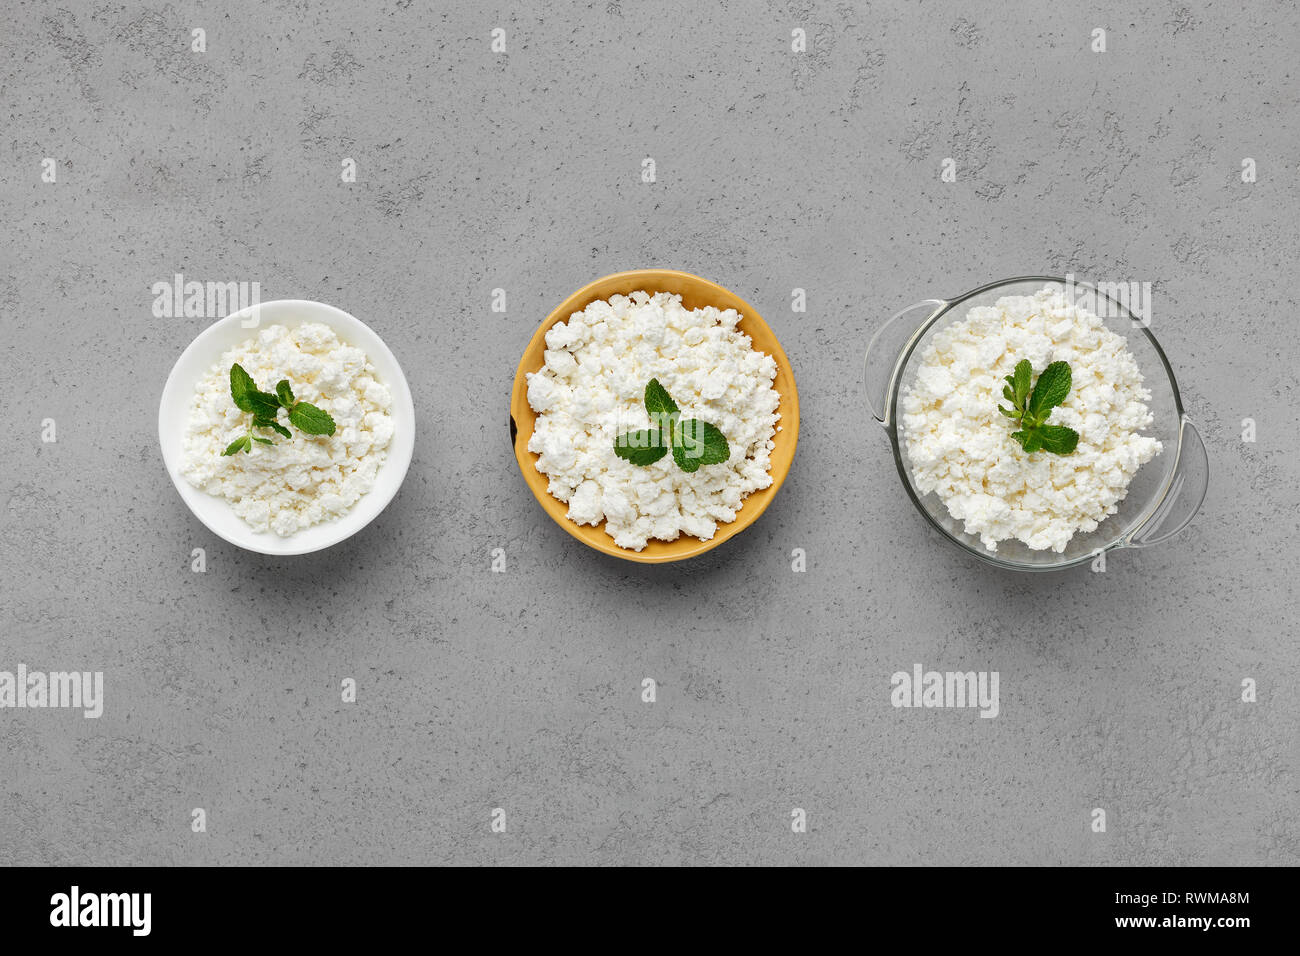 Homemade curd concept - Stock Image